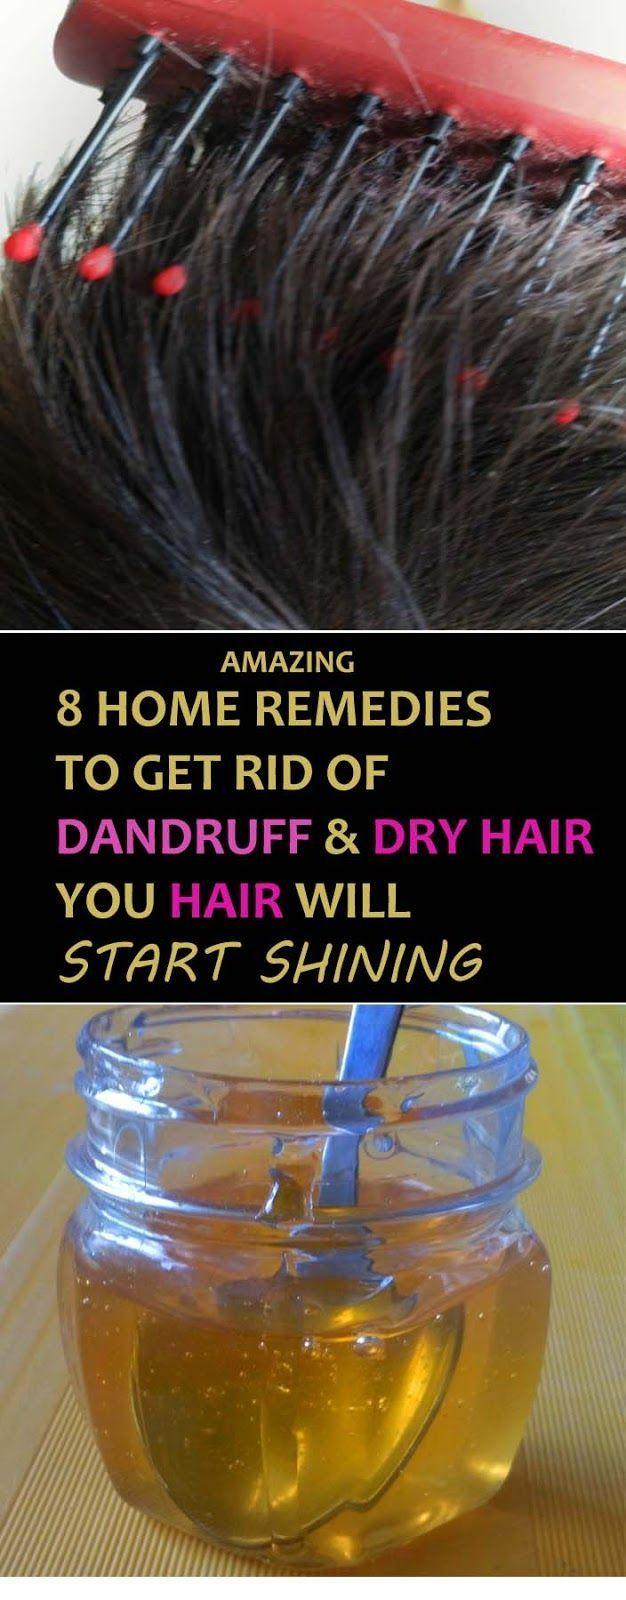 8 Best Home Remedies For Dandruff And Itching Scalp #HomeRemediesforDandruff